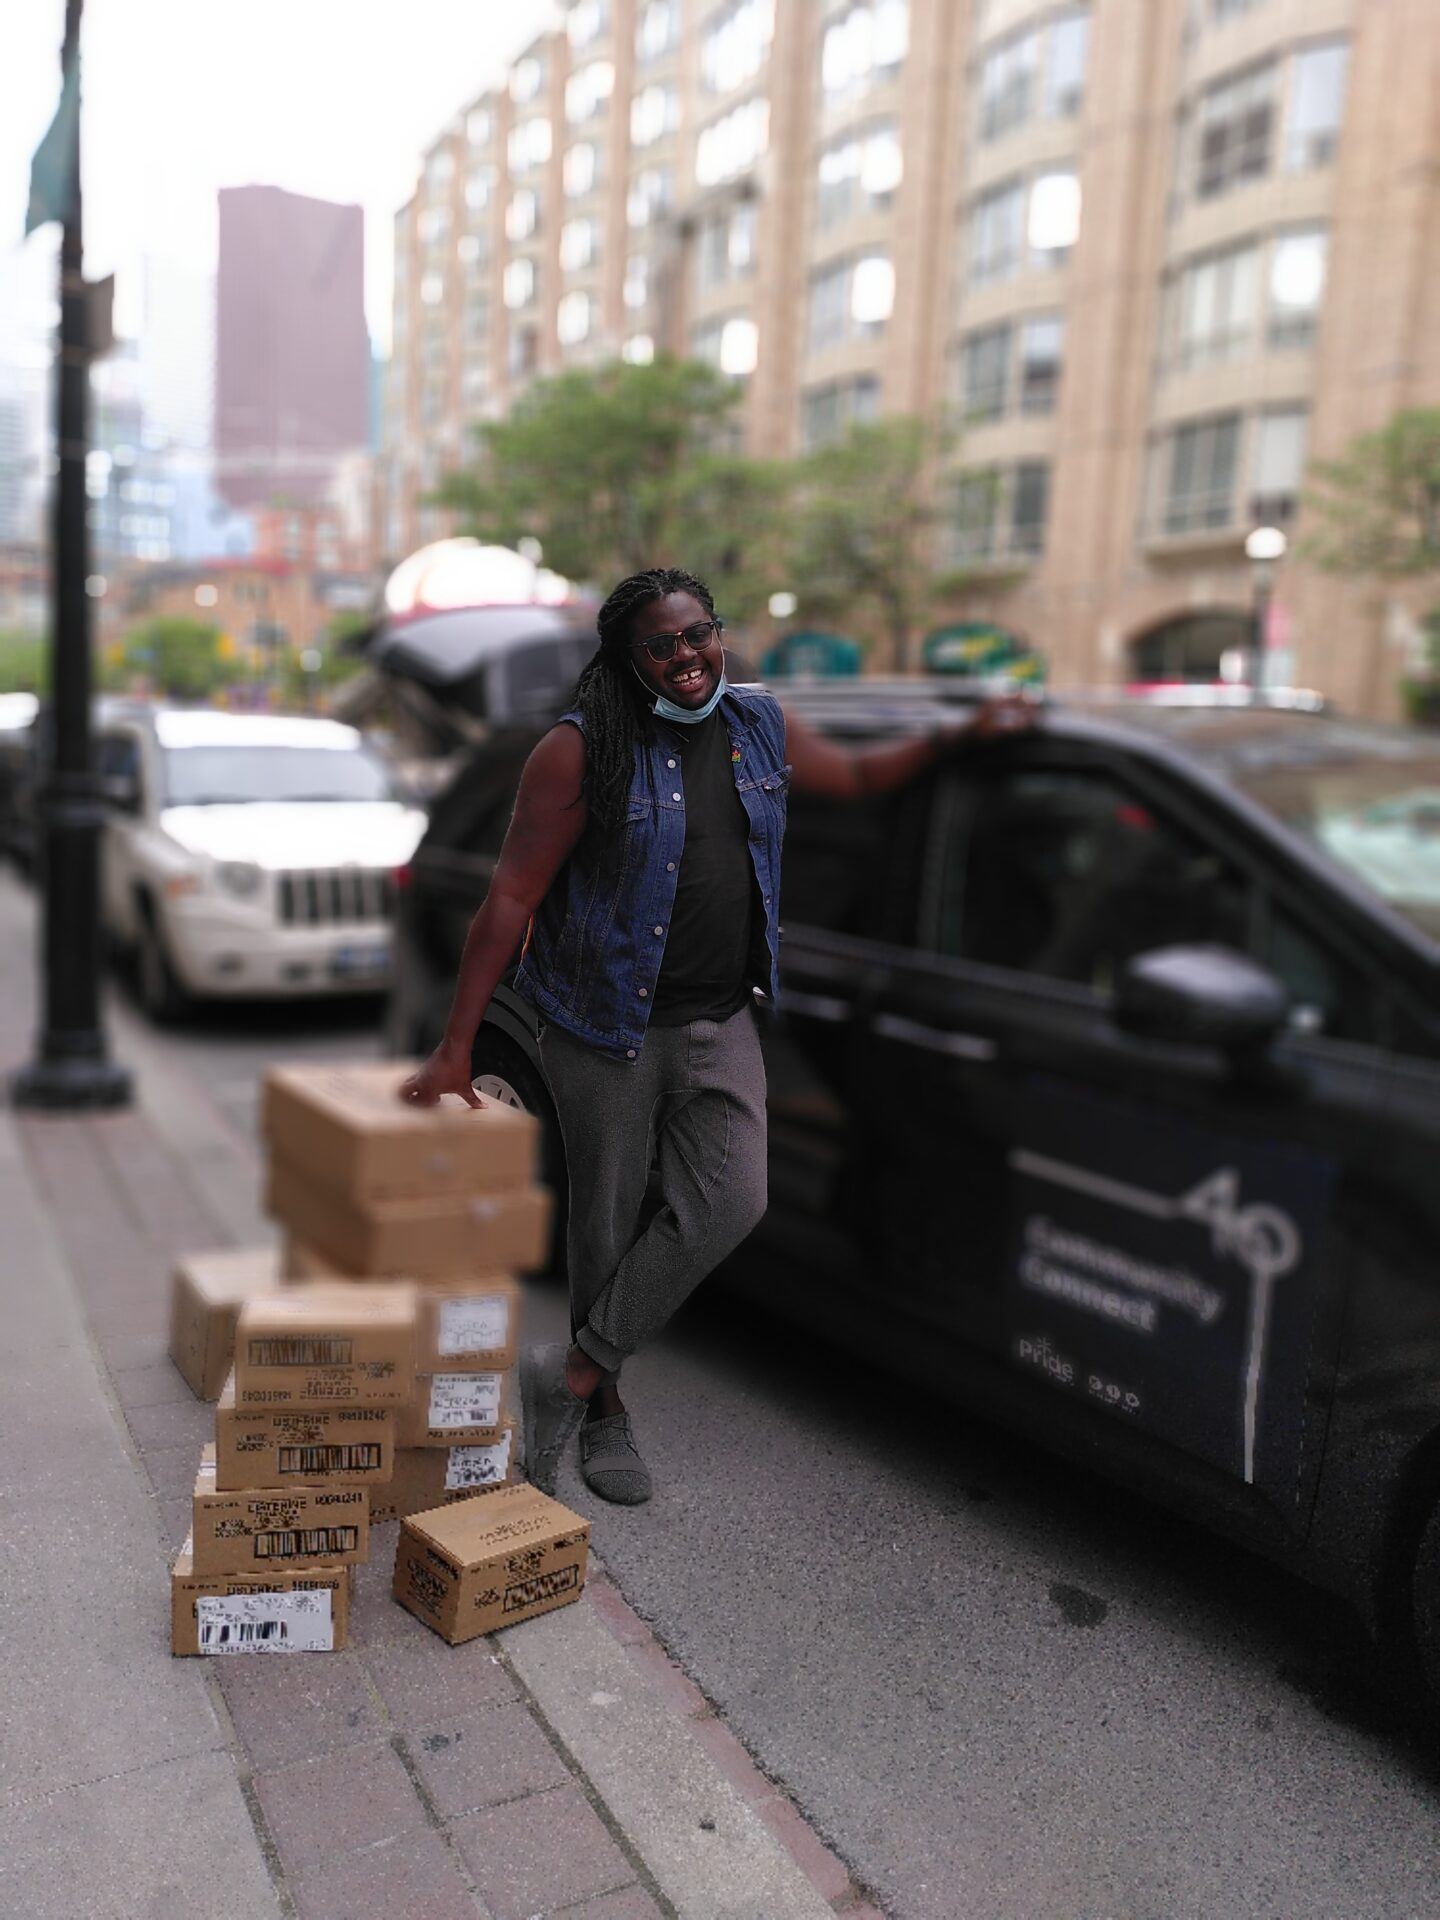 Nicoy (Community Engagement & Office Manager) with boxes of donations